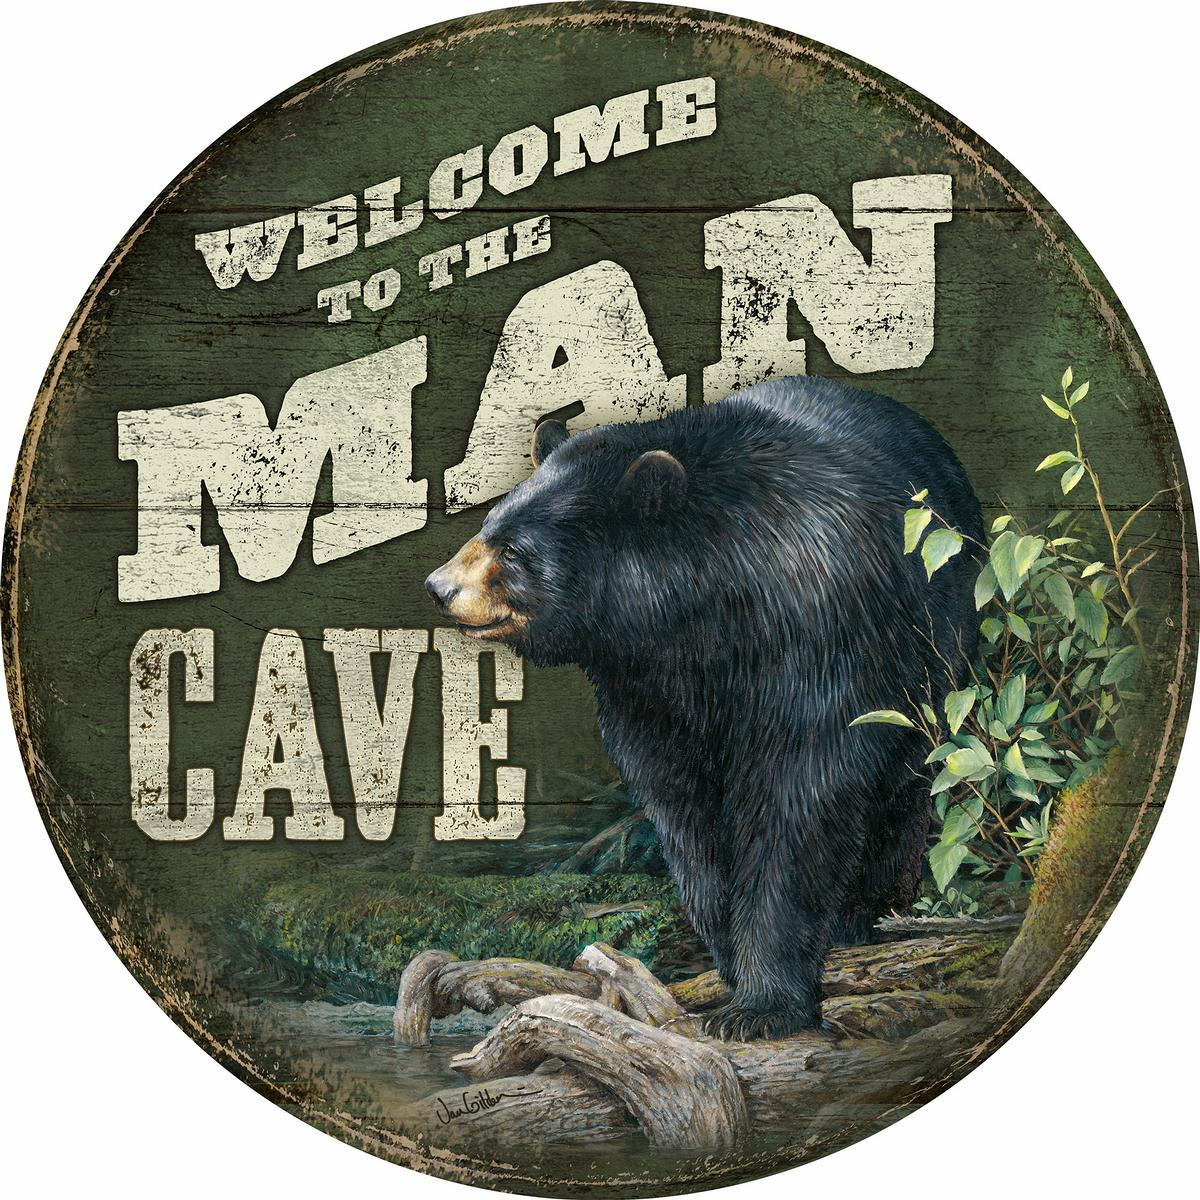 Welcome to the Man Cave.